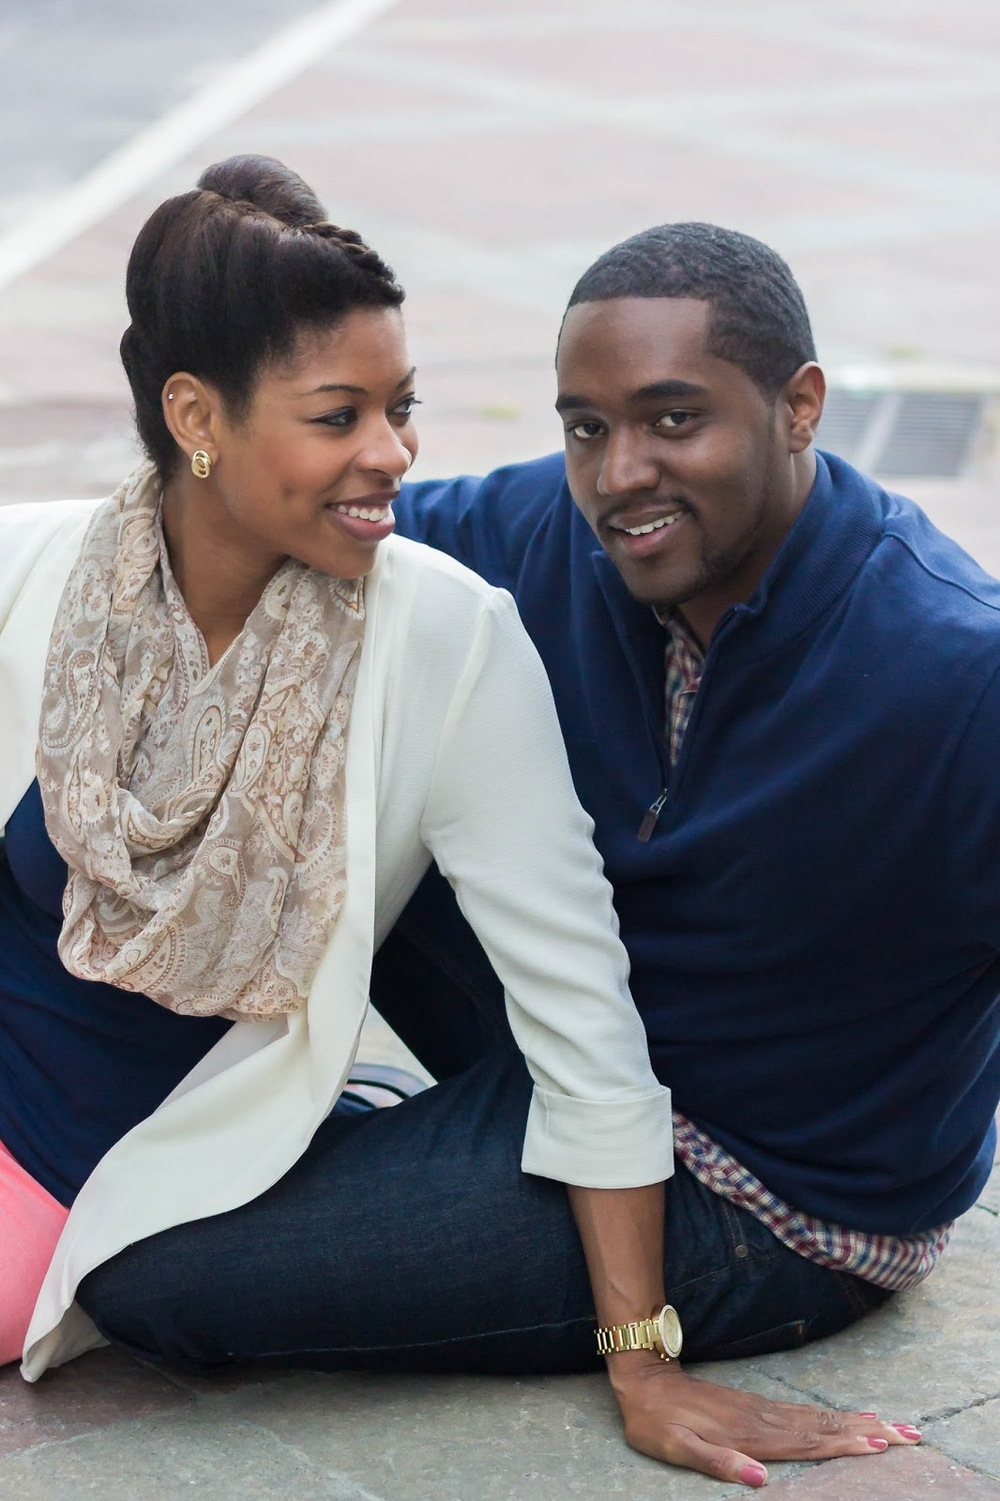 bryant-tyson-photography-mini-couples-session-greenville-nc-photographer-chris-courtney-10.jpg